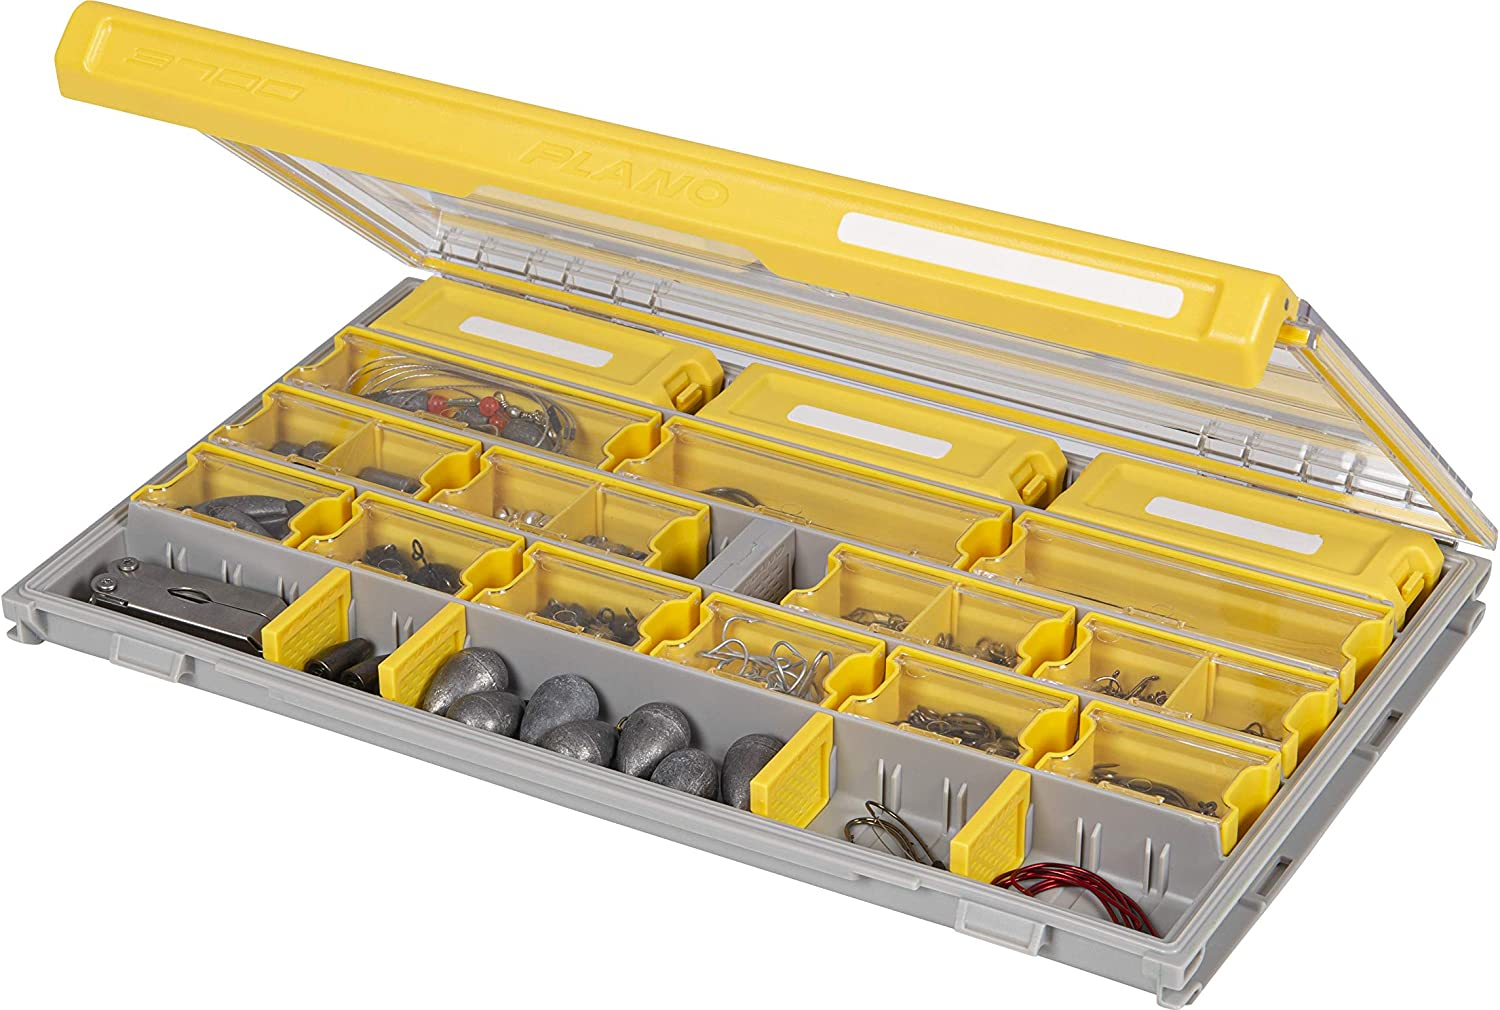 Plano Edge Master Terminal Tackle Storage | Premium Tackle Organization with Rust Prevention